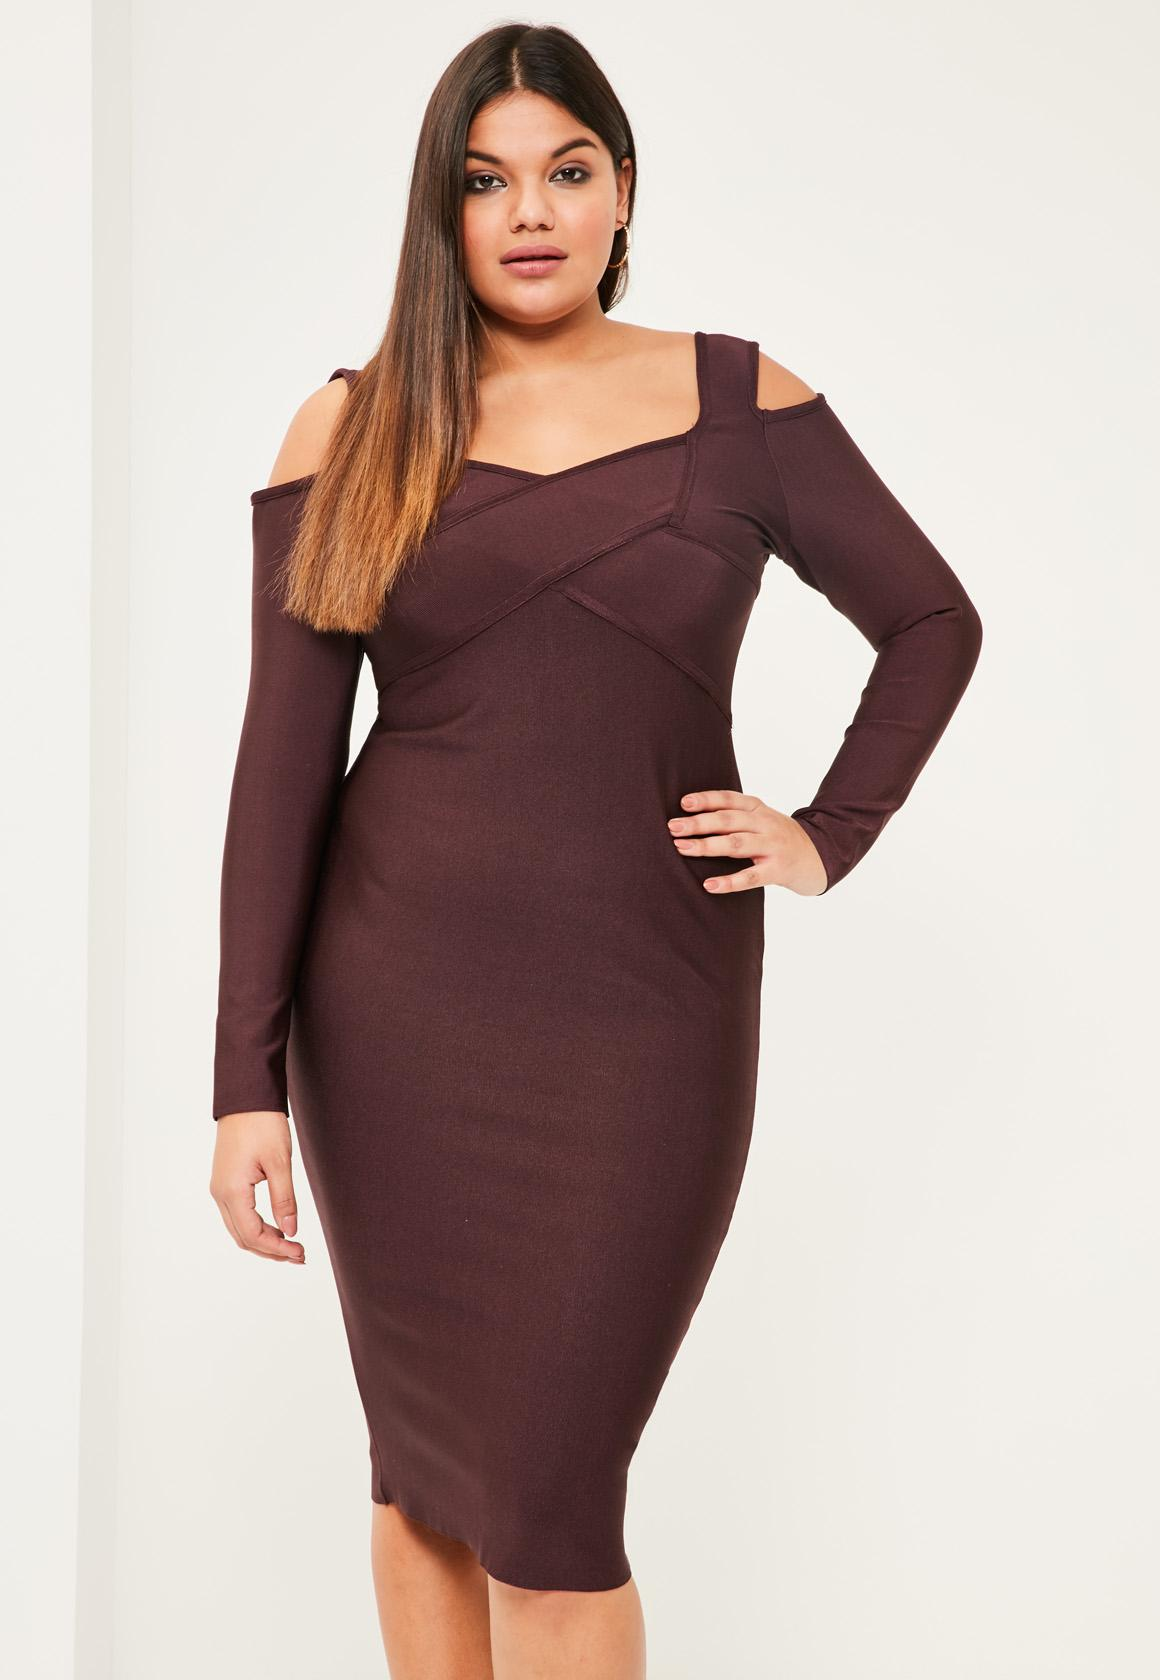 Sears Mother Of The Bride Plus Size Dresses Fashion Dresses